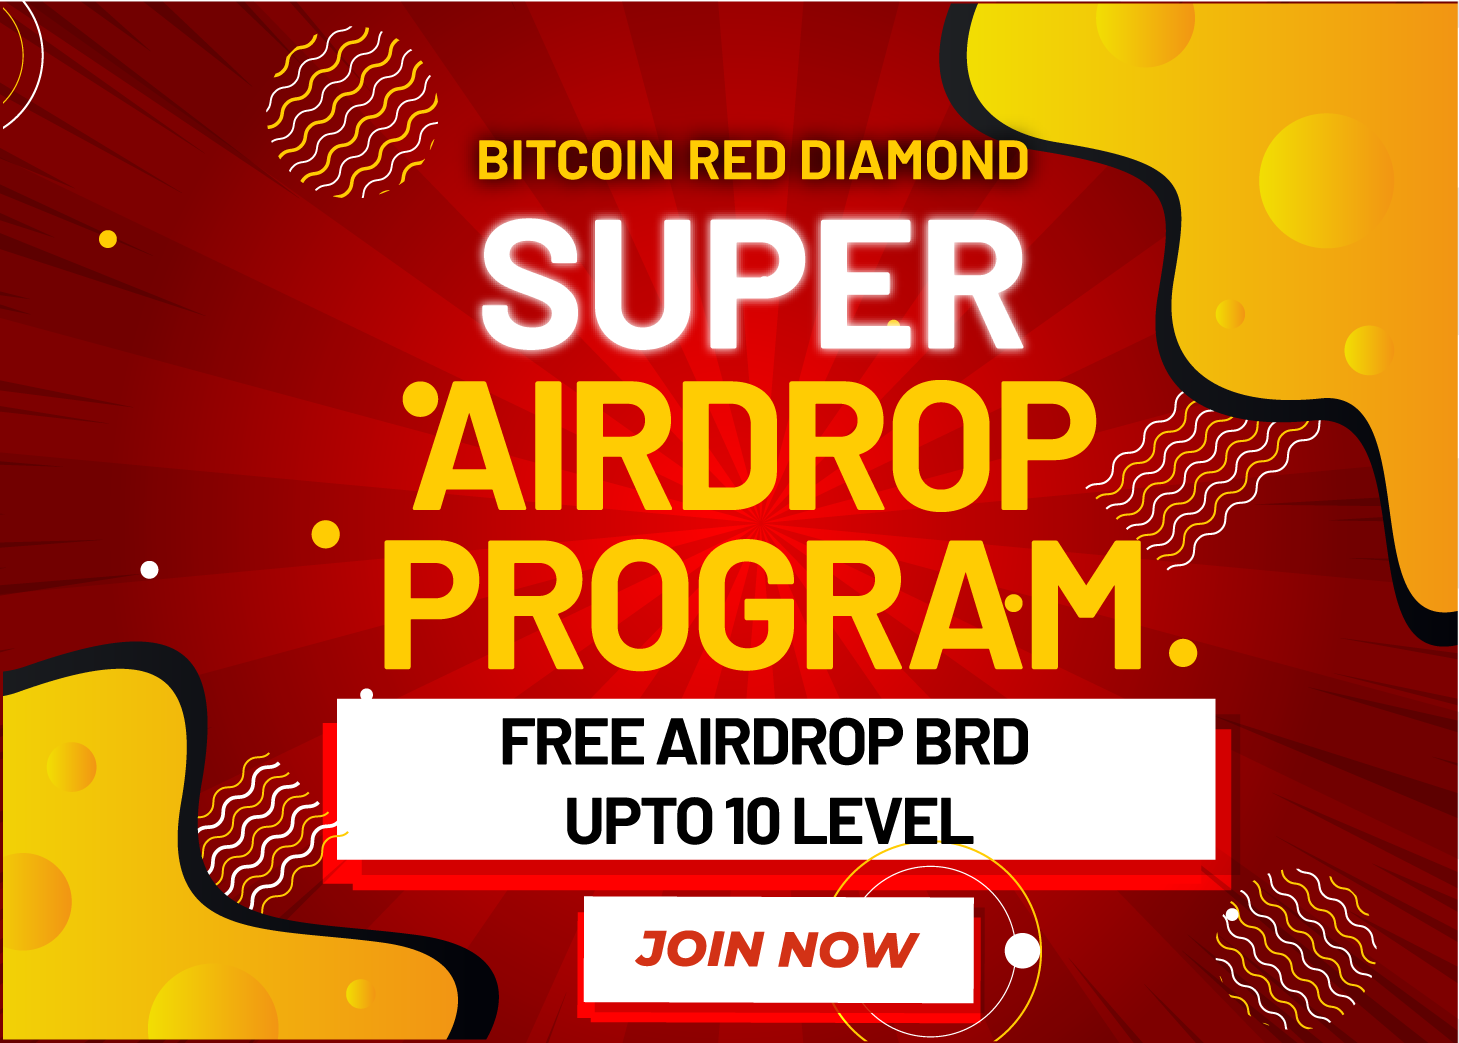 Bitcoin Red Diamond – The Digital Technology Platform for the future